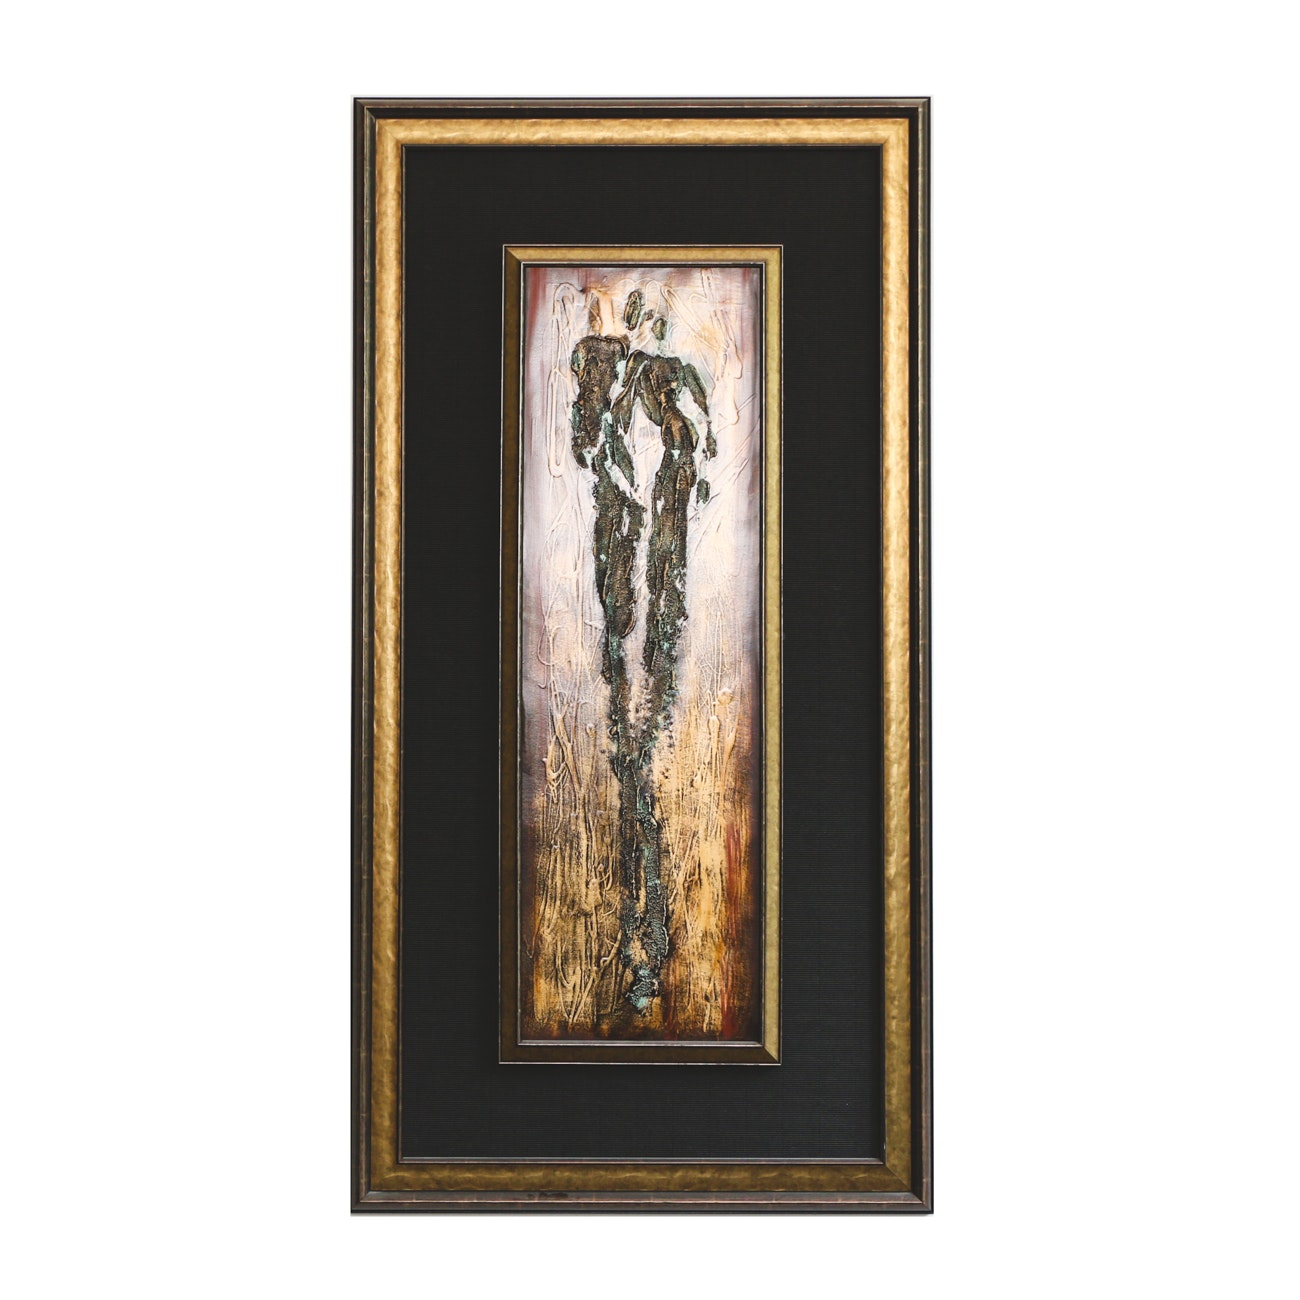 Textured Painting of Two Human Figures